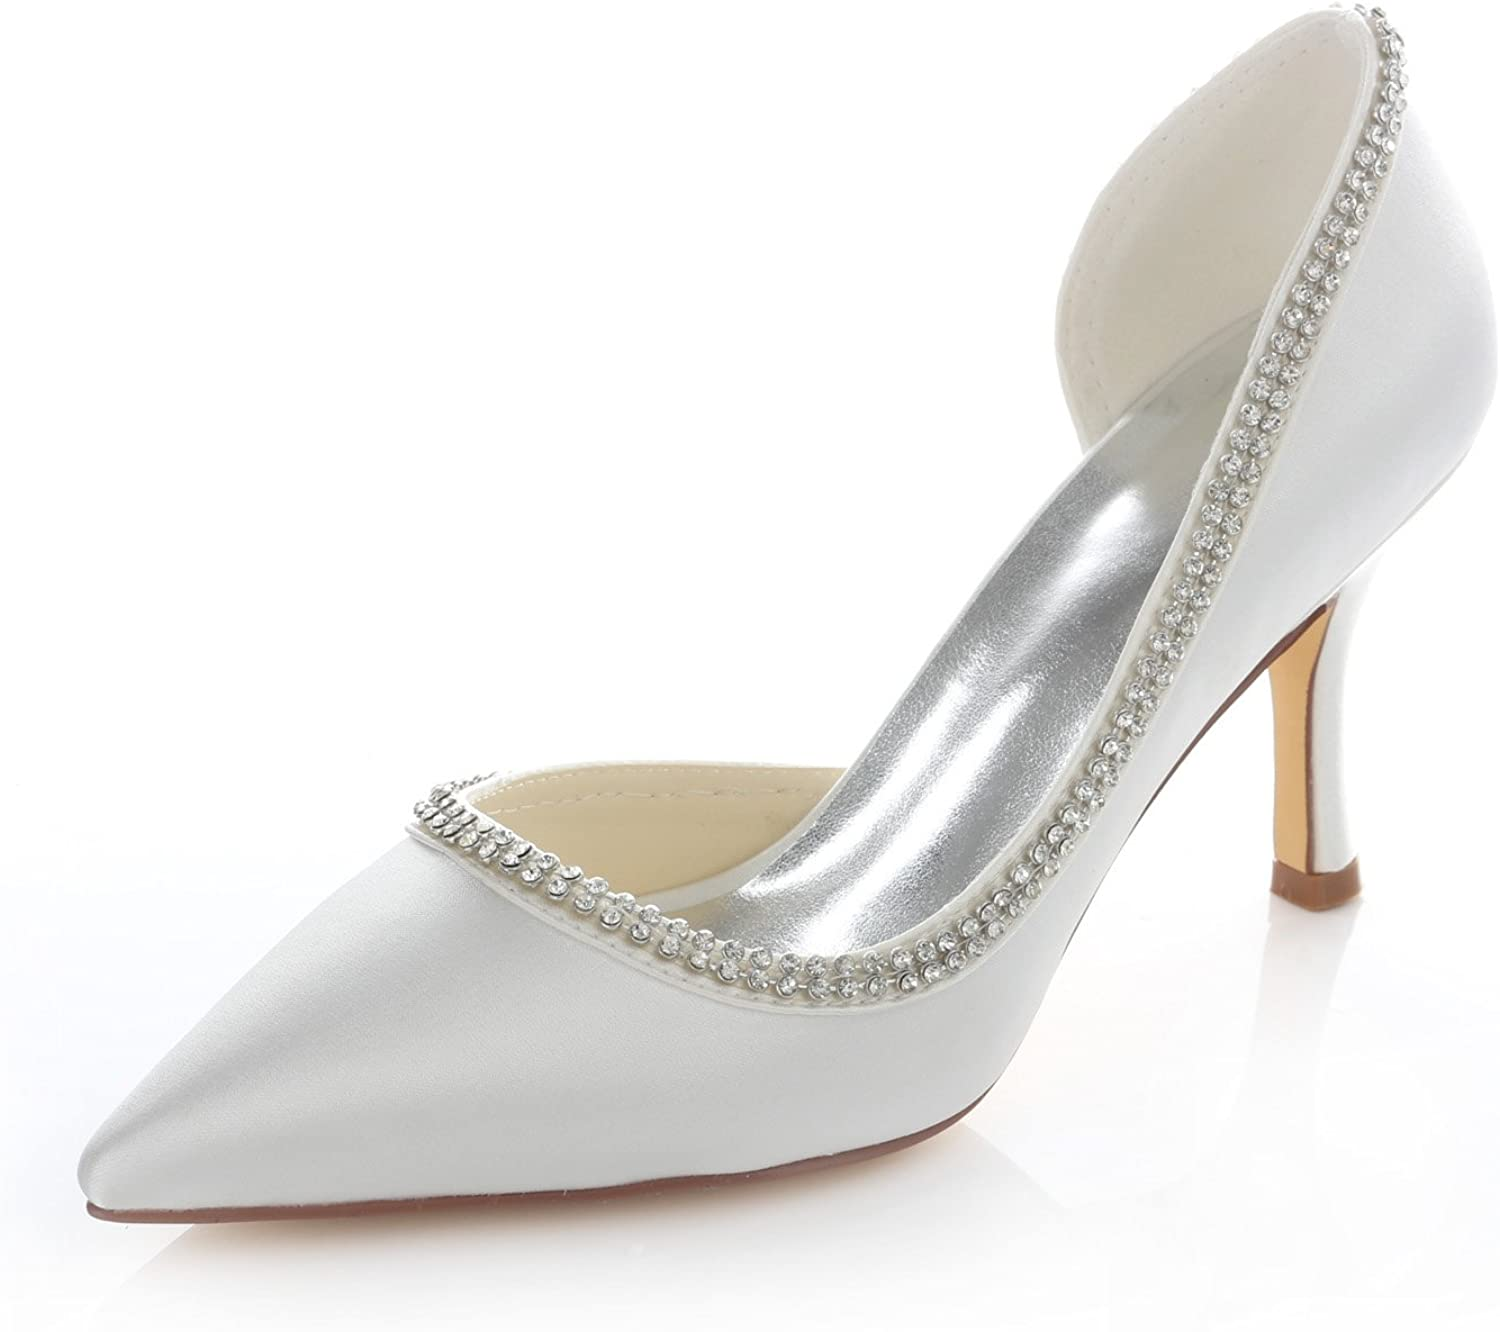 Emily Bridal Ivory Cut Out In a popularity Weddin Pumps Satin Outlet sale feature Pointed Toe